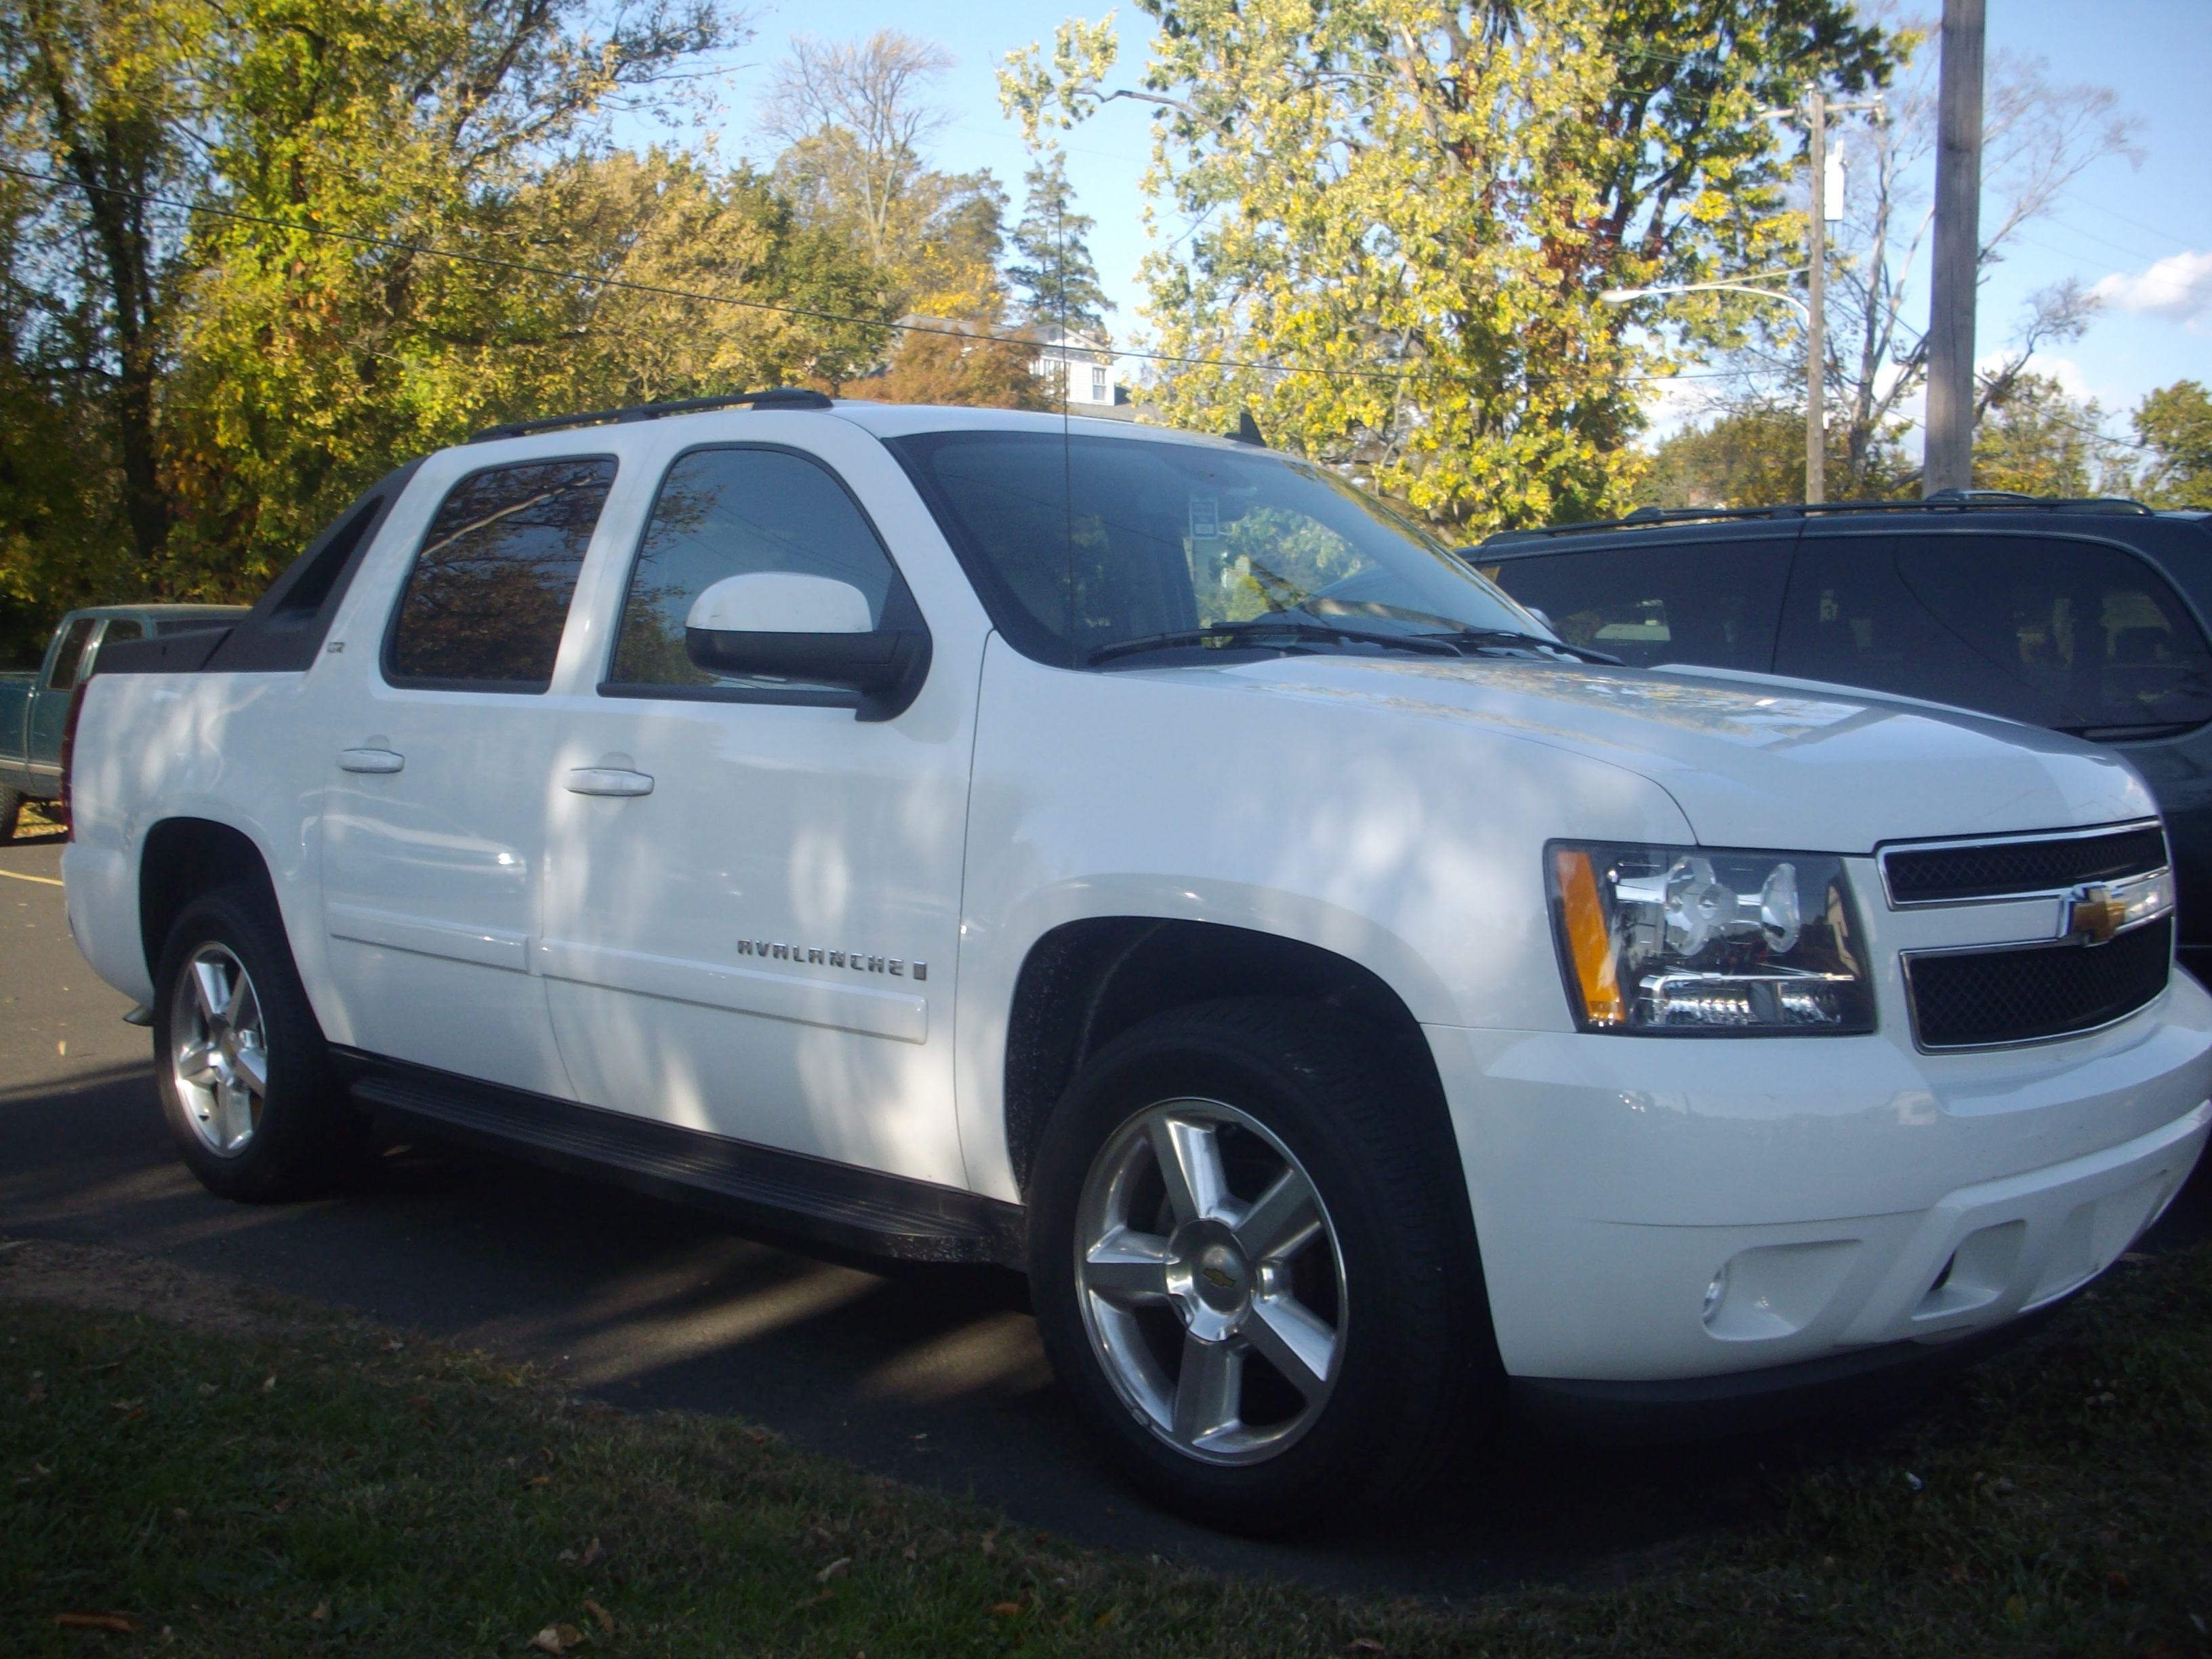 2008 chevrolet avalanche information and photos momentcar. Black Bedroom Furniture Sets. Home Design Ideas